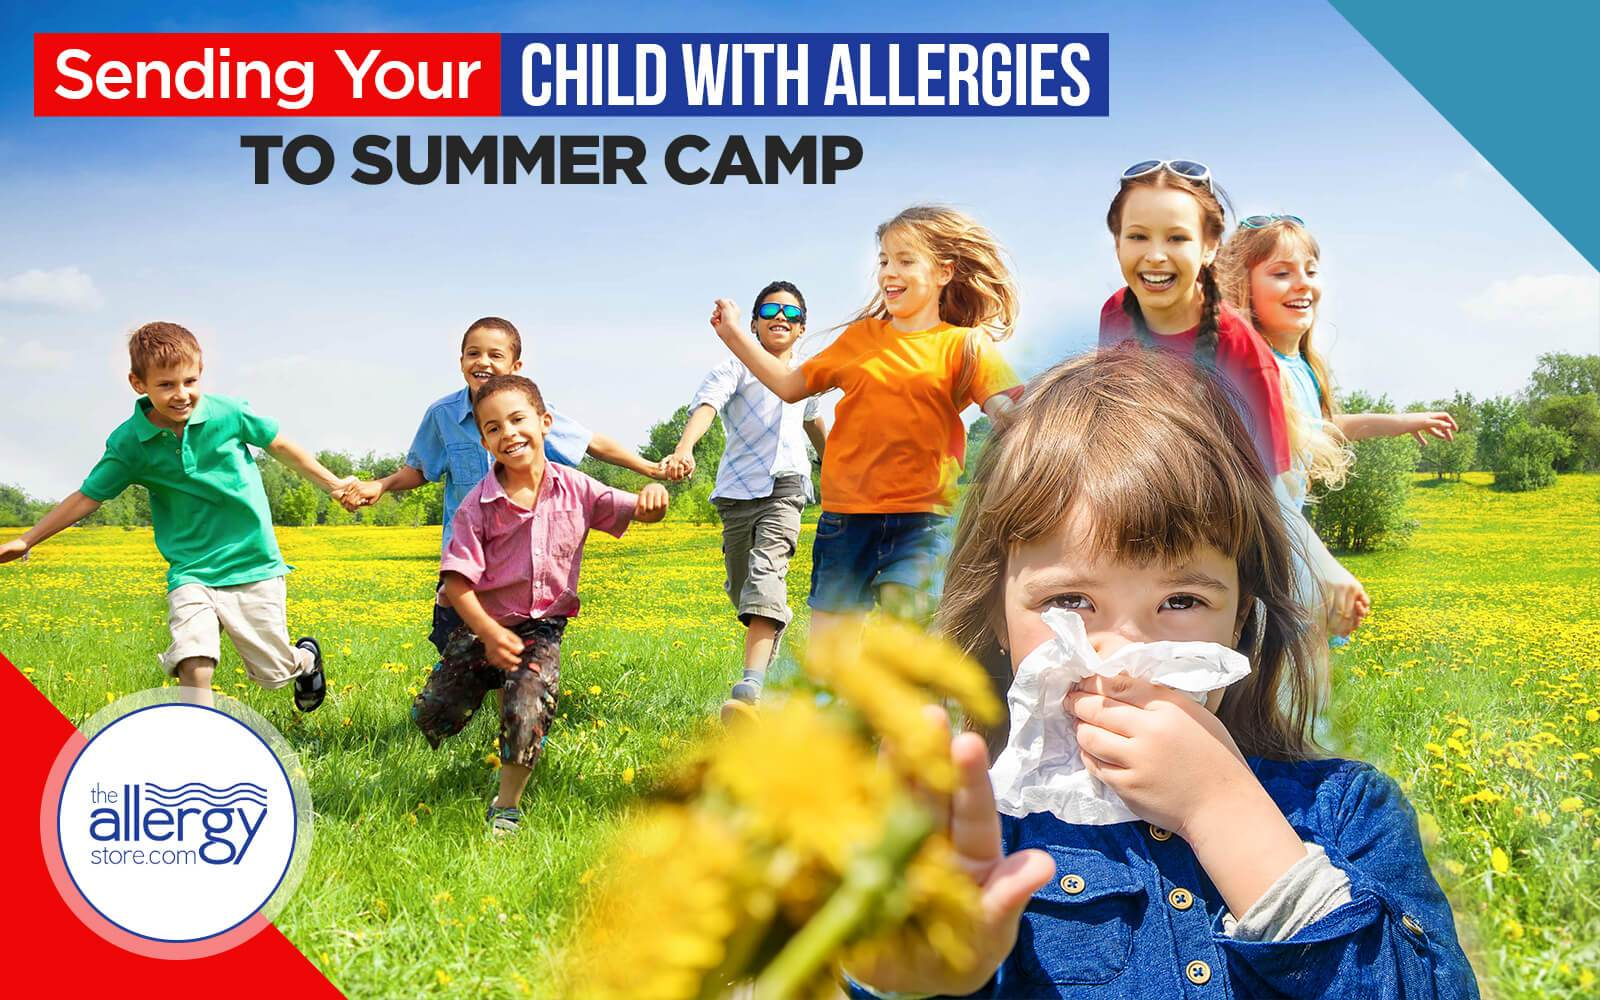 Sending Your Child with Allergies to Summer Camp